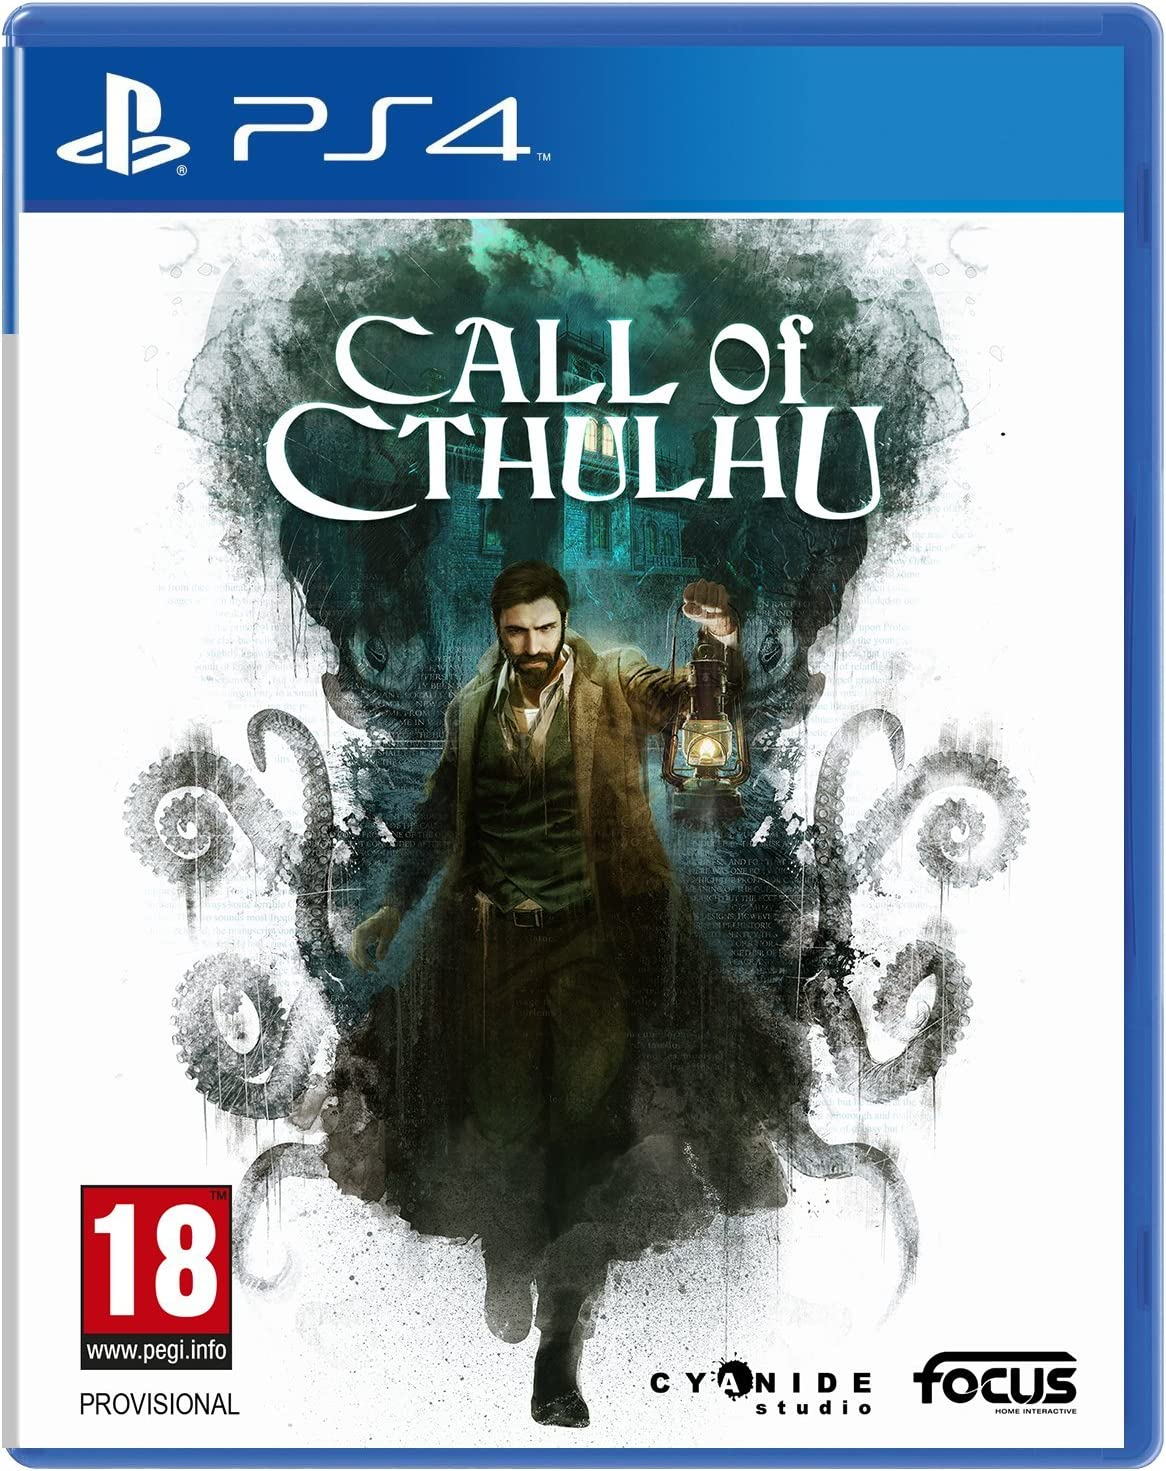 Call of Cthulhu - PlayStation 4 [Importación francesa]: Amazon.es: Videojuegos